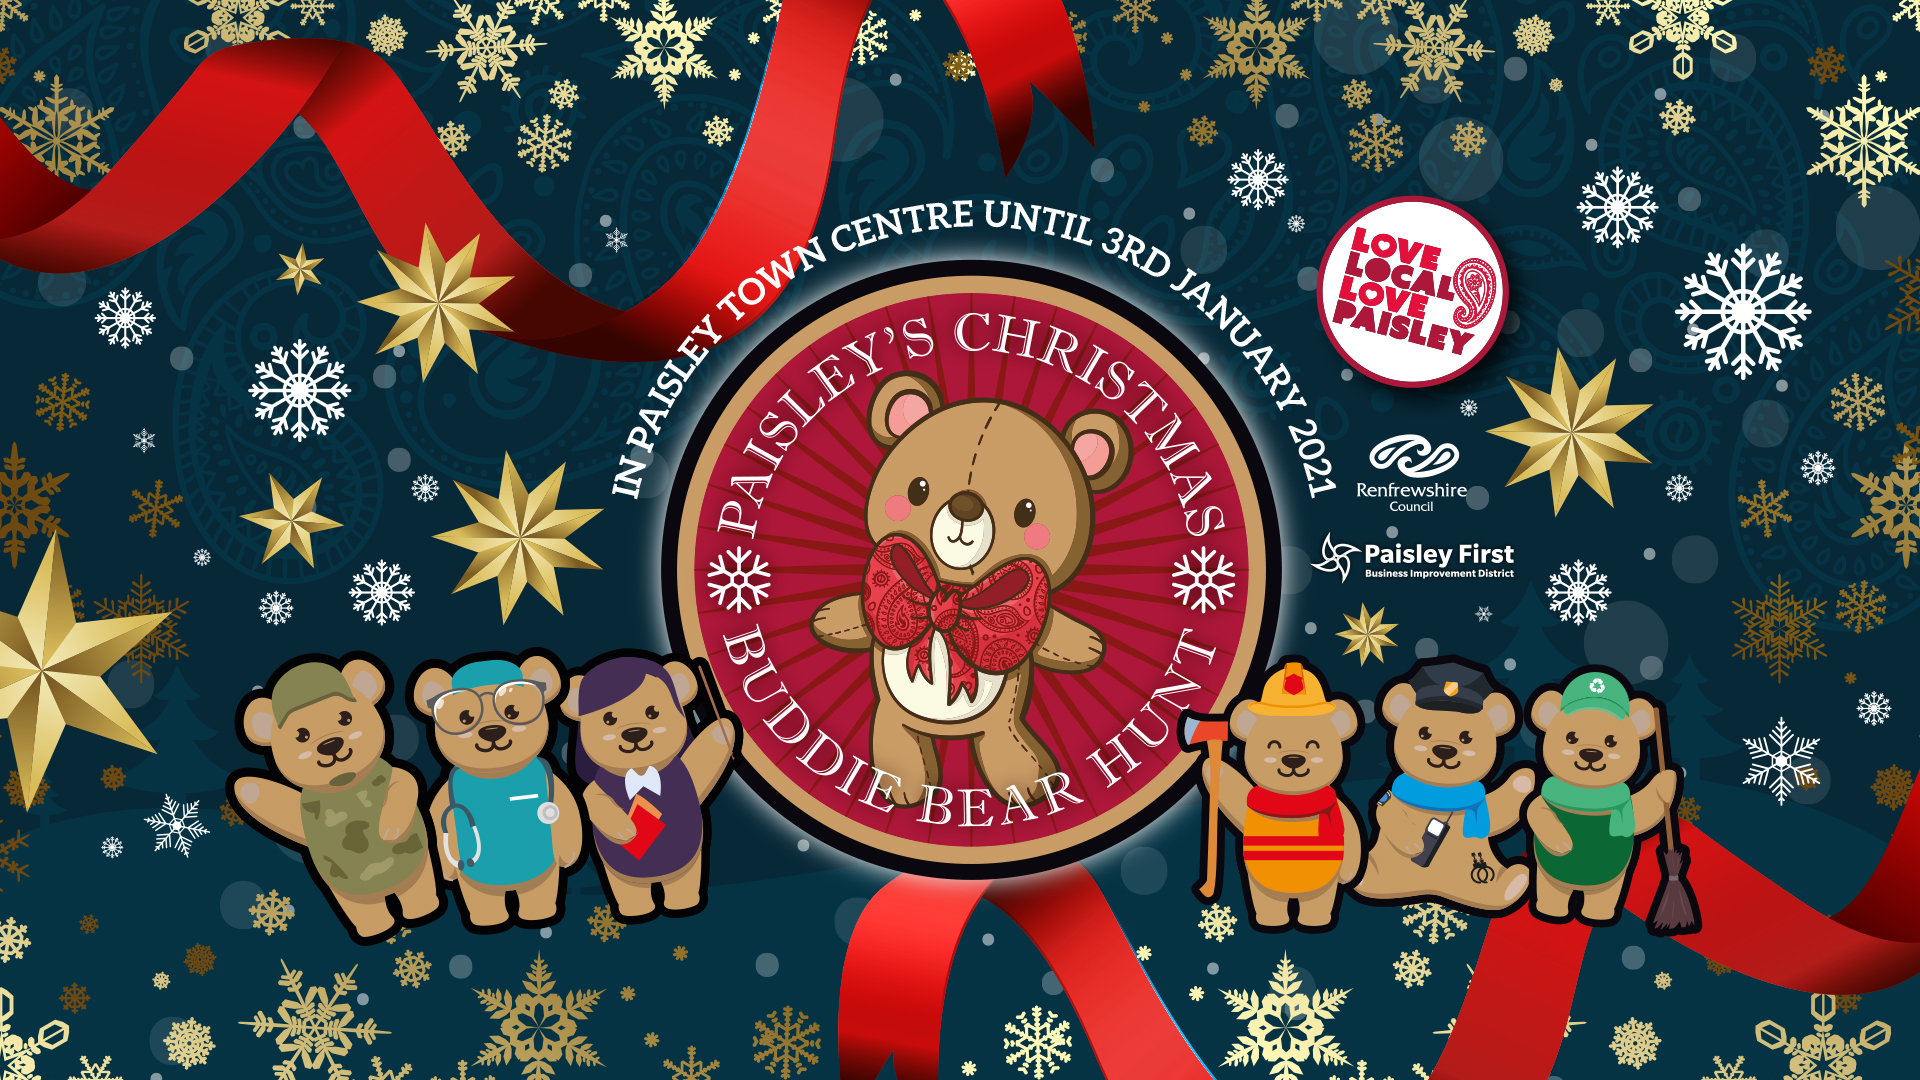 In-Paisley-Town-Centre-Paisley-First-Social-Media-1920x1080px-Christmas-Buddy-Bear-Hunt-04-11-2020-2